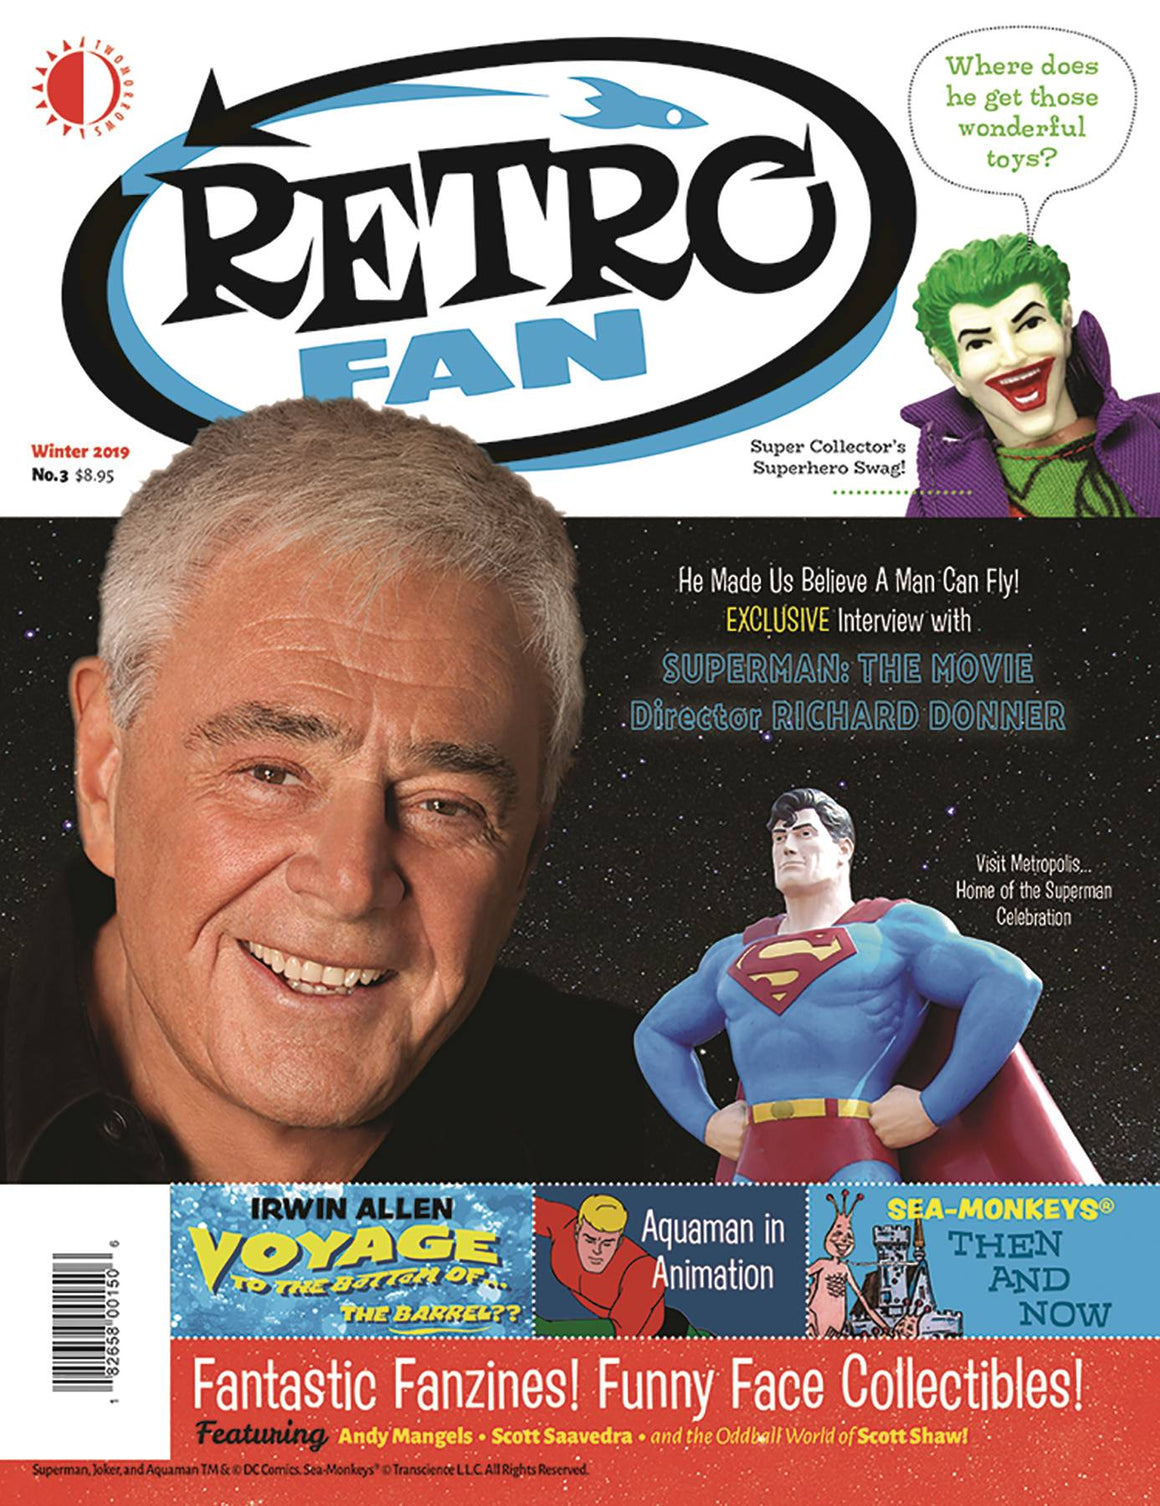 RETROFAN MAGAZINE #3